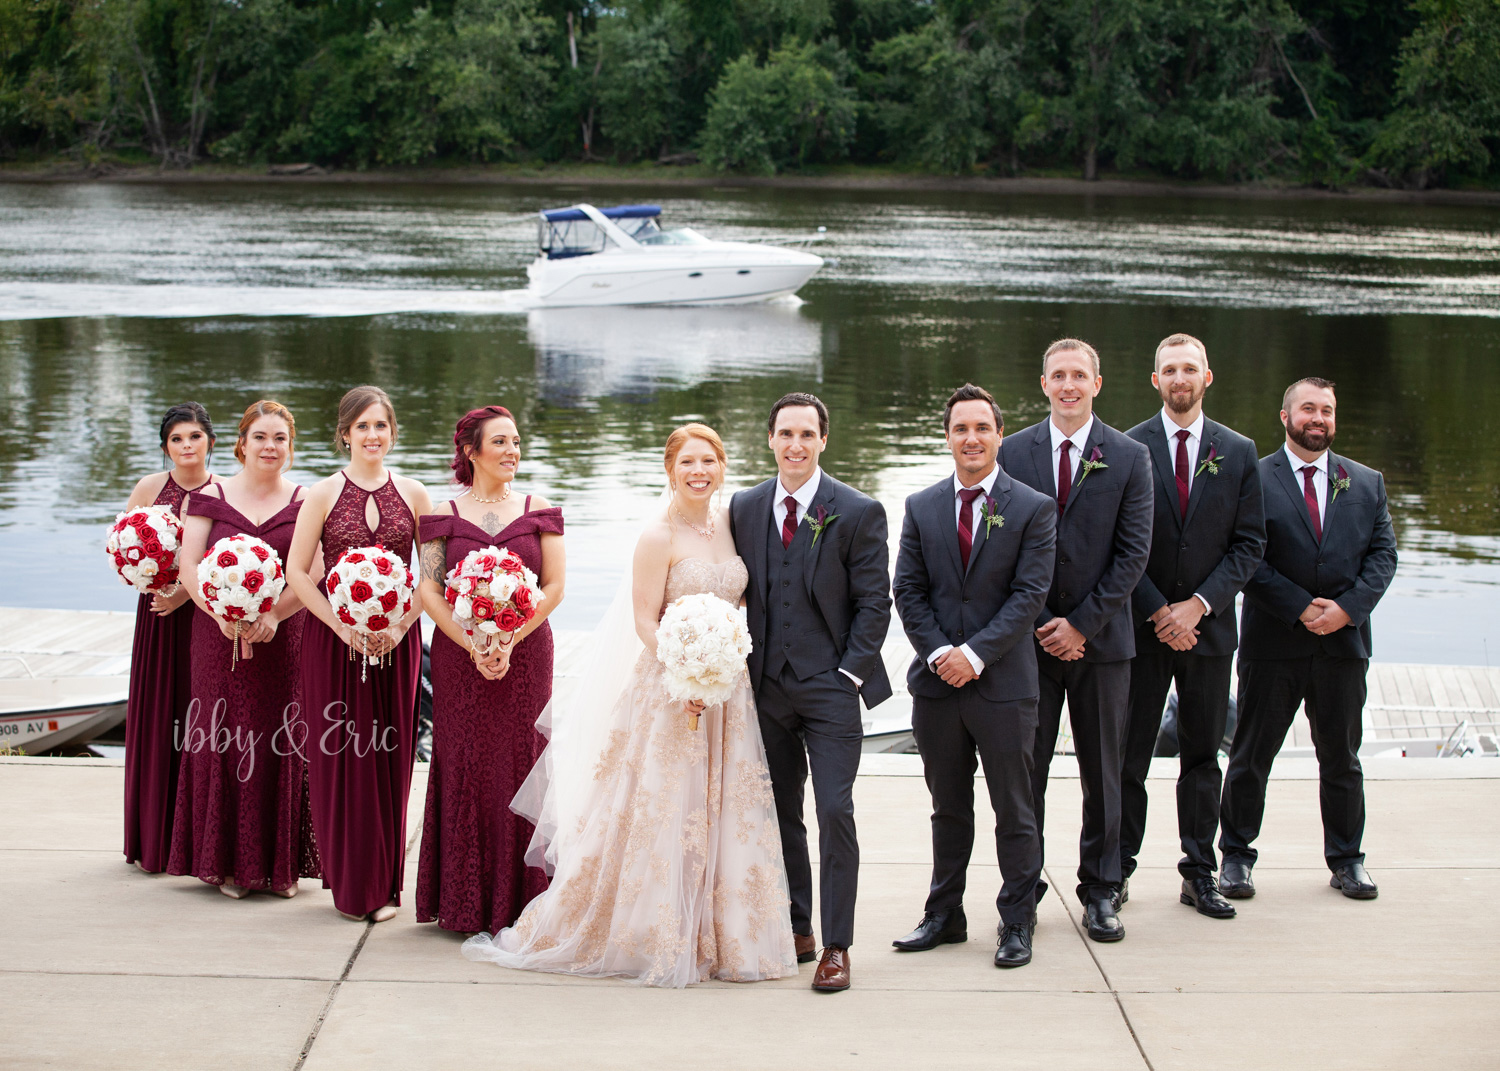 Wedding party line up with a boat driving down the river in the background.